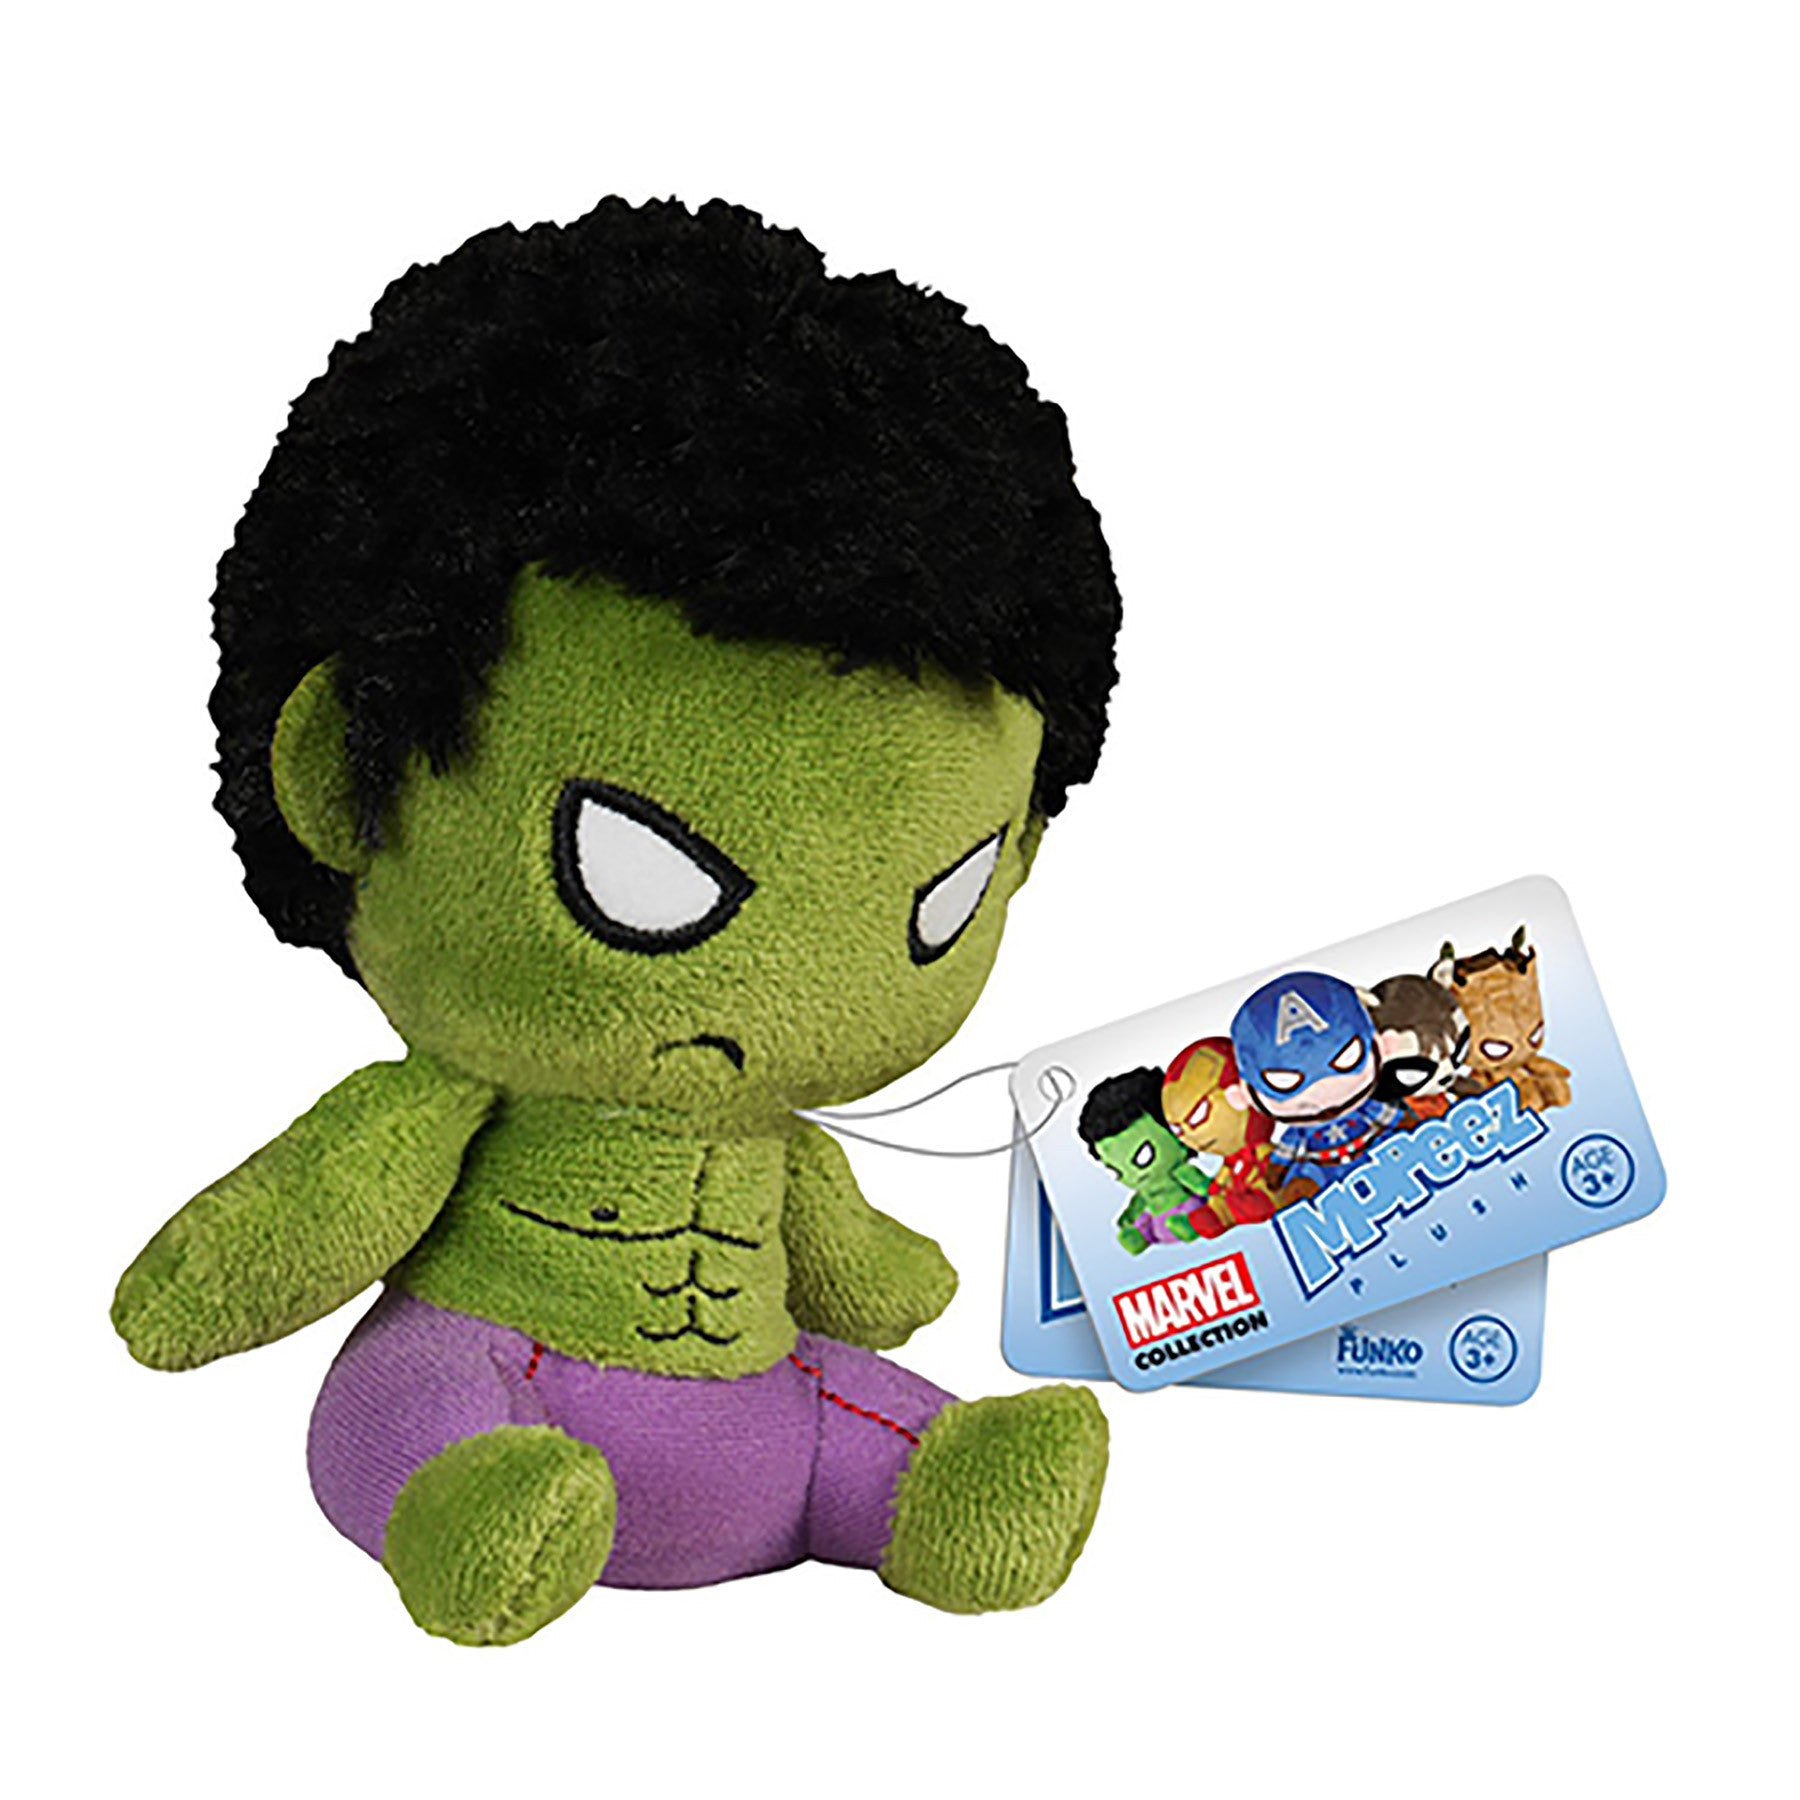 Mopeez - Marvel - Hulk Plush